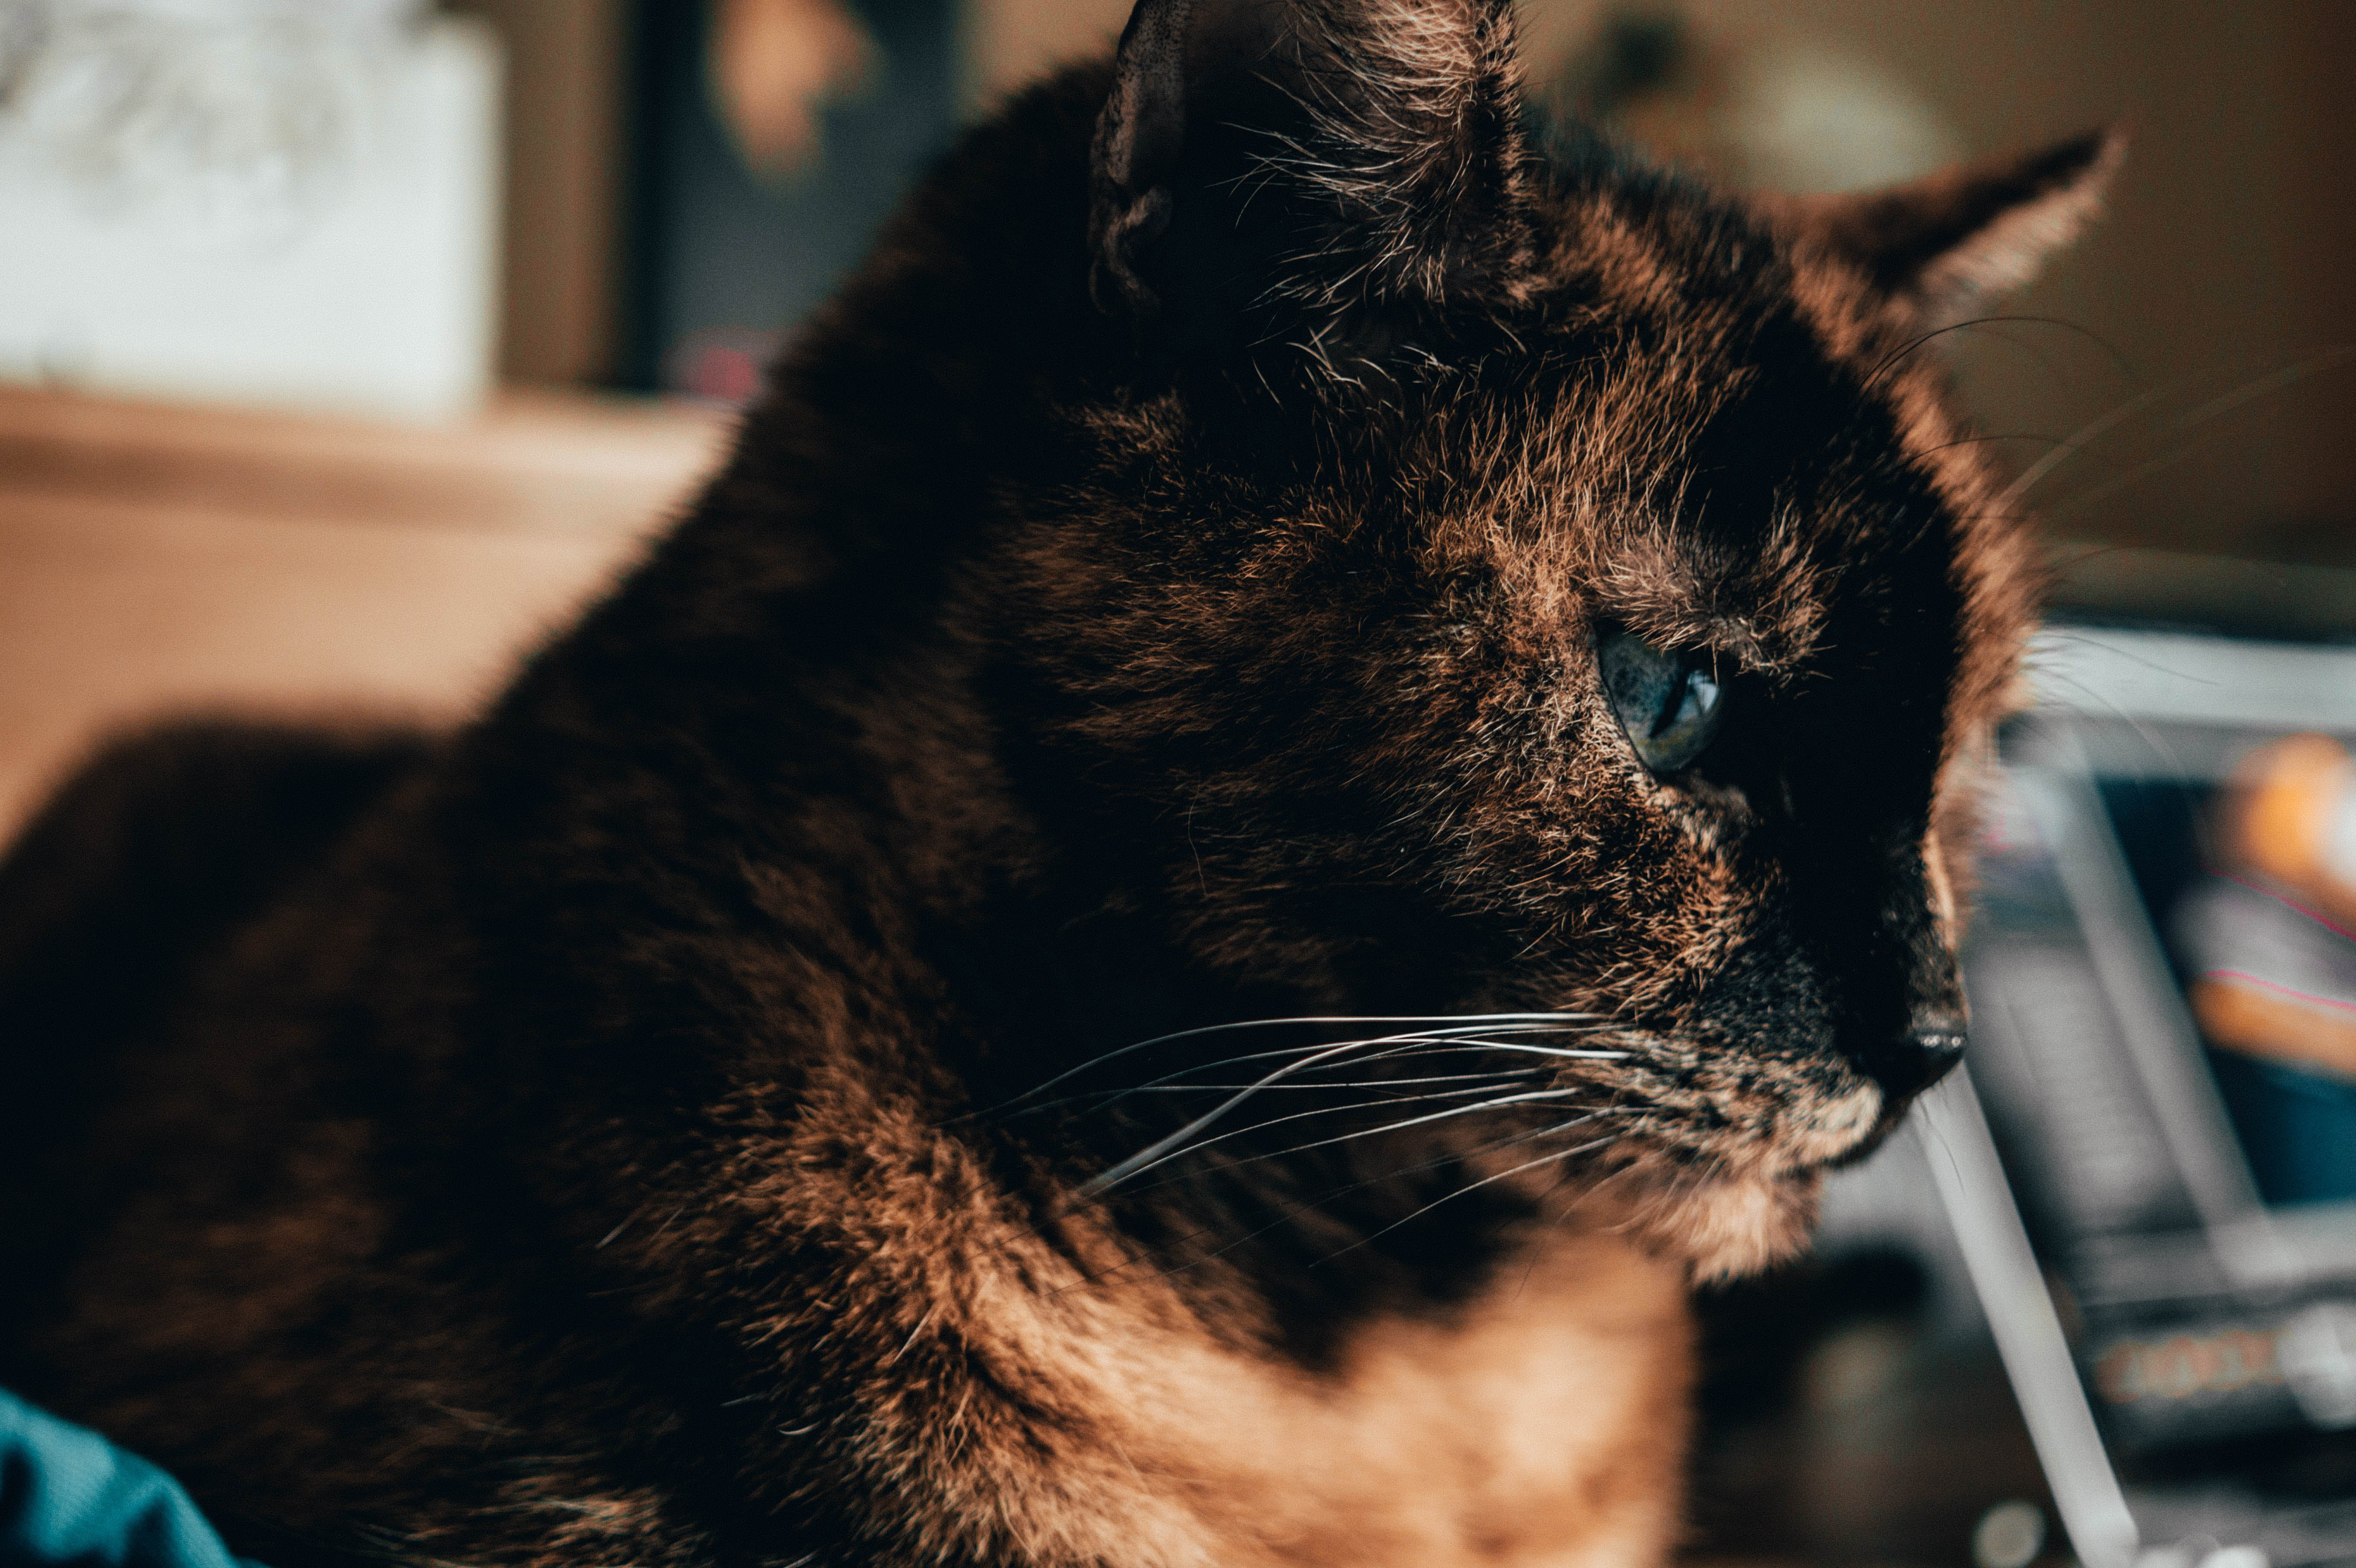 Shallow Focus of Brown Cat